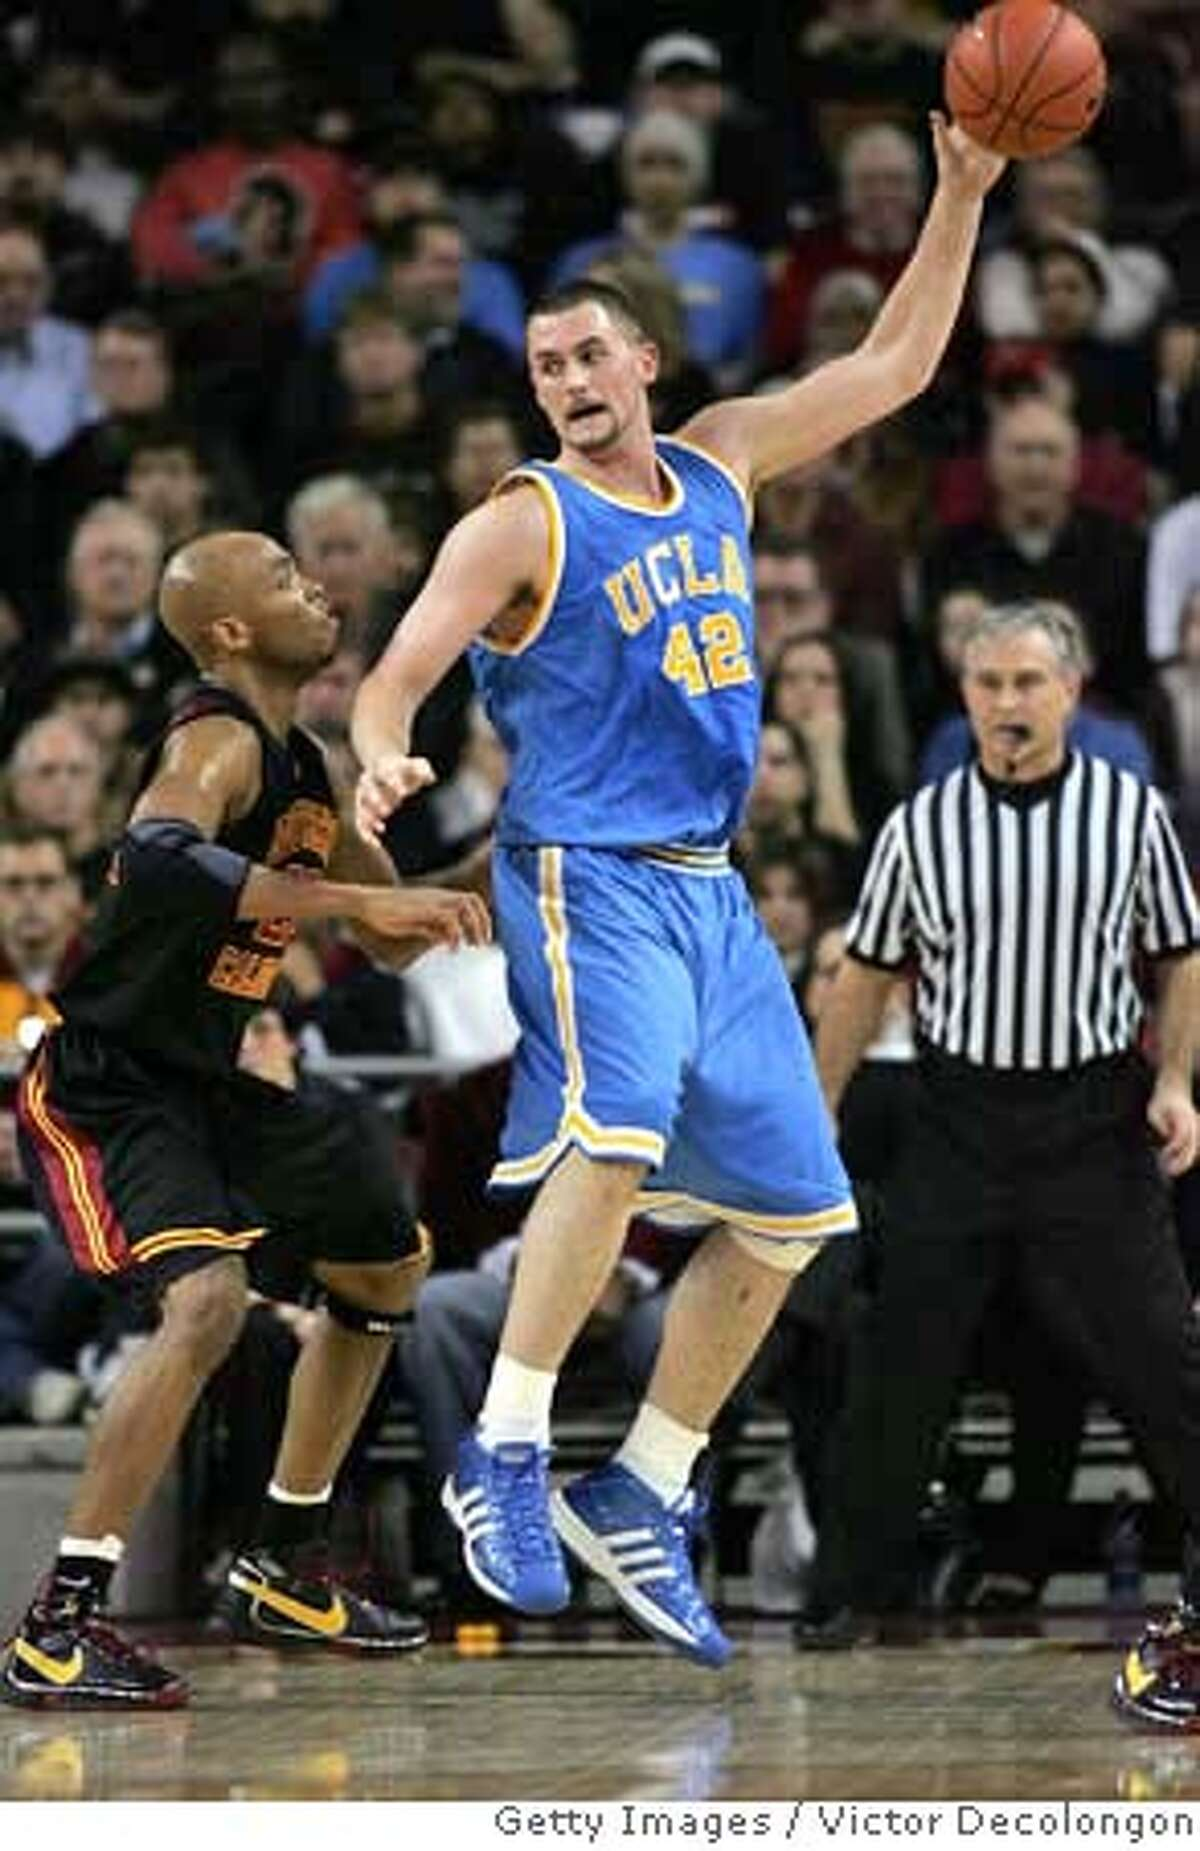 ###Live Caption:LOS ANGELES, CA - FEBRUARY 17: Kevin Love #42 of the UCLA Bruins gets the ball in the low post against Taj Gibson #22 of the USC Trojans in the first half during their Pac-10 Conference game at the Galen Center on February 17, 2008 in Los Angeles, California. (Photo by Victor Decolongon/Getty Images)###Caption History:LOS ANGELES, CA - FEBRUARY 17: Kevin Love #42 of the UCLA Bruins gets the ball in the low post against Taj Gibson #22 of the USC Trojans in the first half during their Pac-10 Conference game at the Galen Center on February 17, 2008 in Los Angeles, California. (Photo by Victor Decolongon/Getty Images)###Notes:UCLA v USC###Special Instructions: